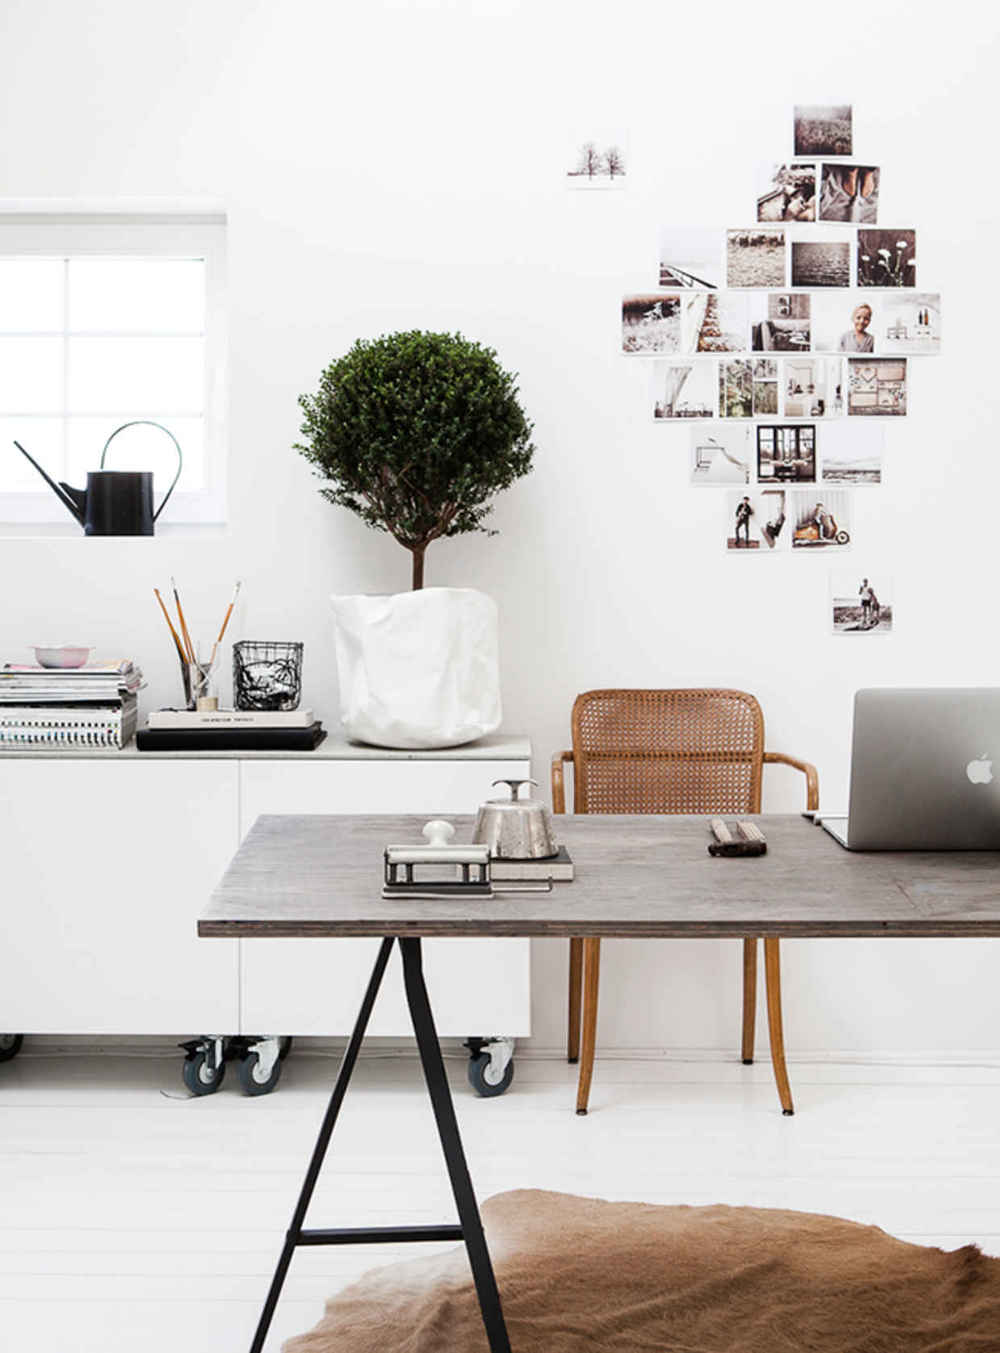 In one word...obsessed! From the rattan chair and the cowhide rug, to the potted boxwood plant and collage style photos, this office is perfection!